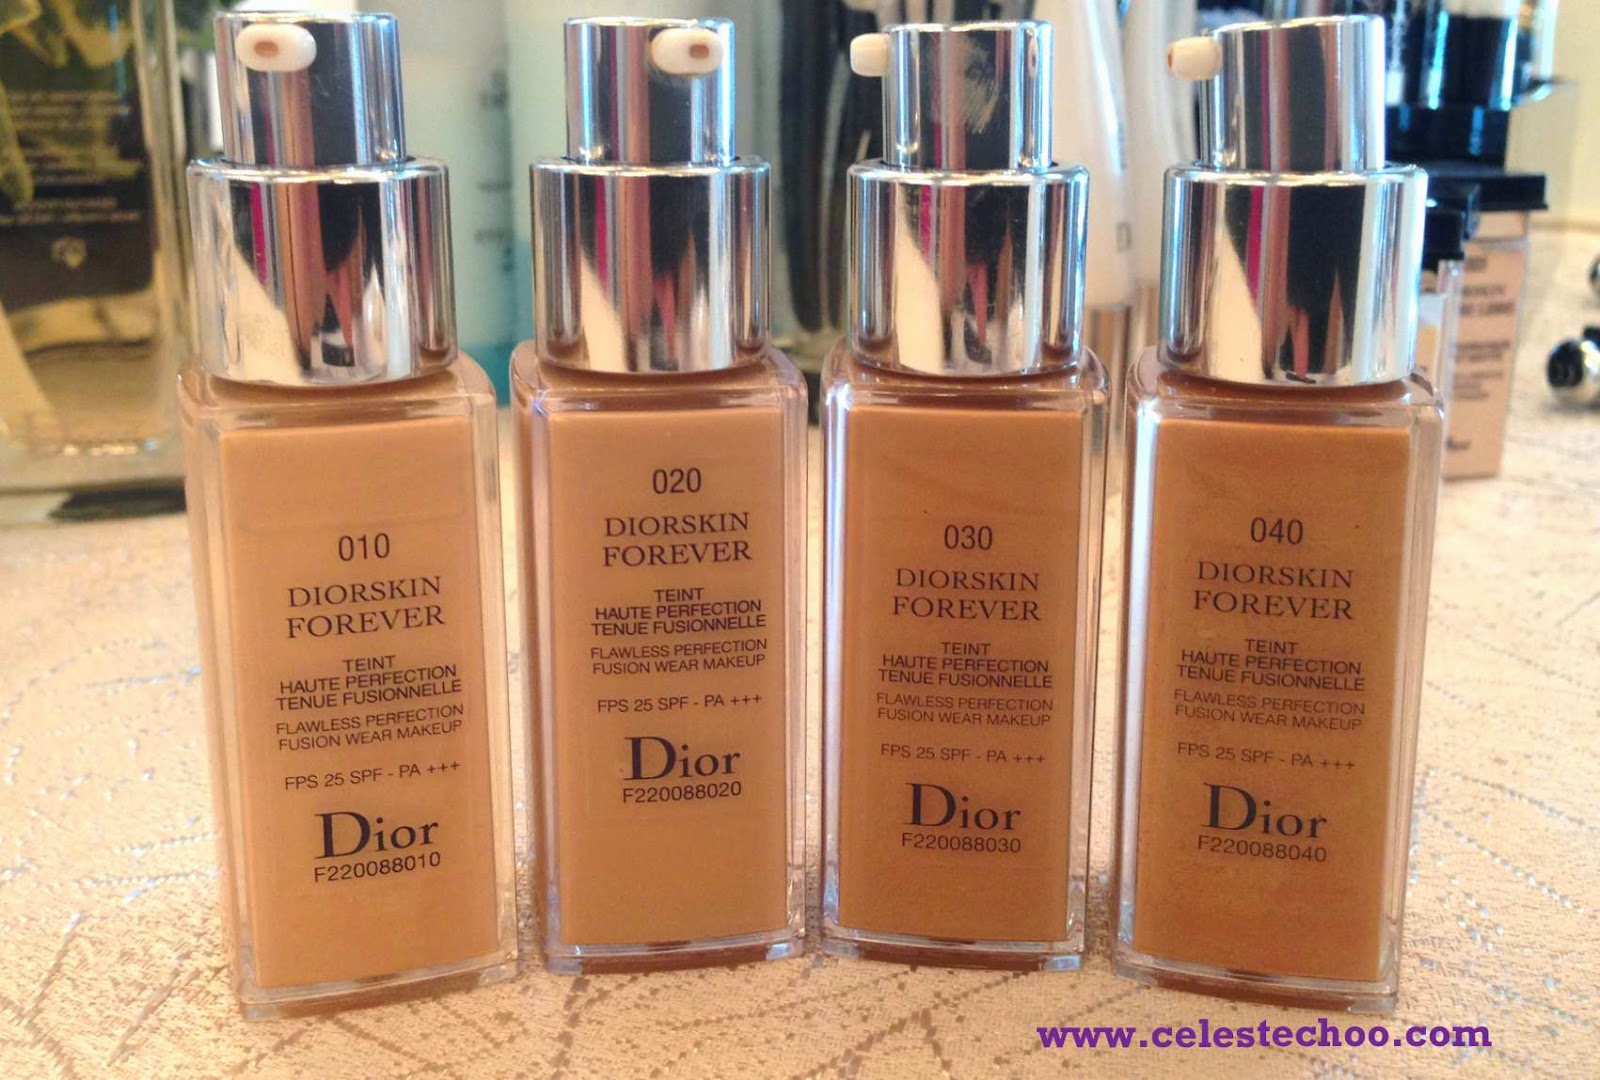 dior_beauty_makeup_workshop_diorskin_forever_foundation